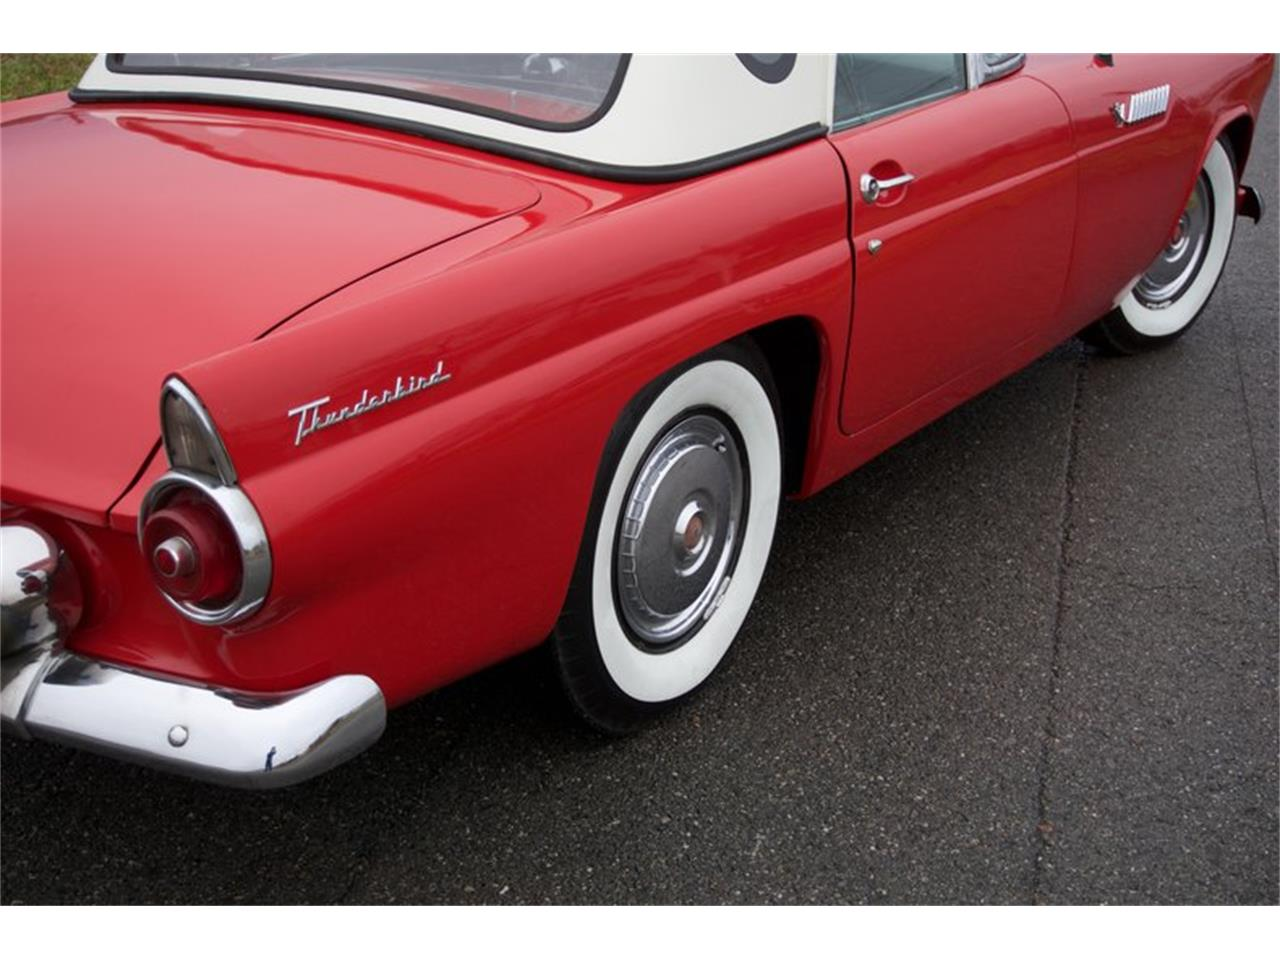 Large Picture of '55 Thunderbird Auction Vehicle Offered by GAA Classic Cars Auctions - PDHS